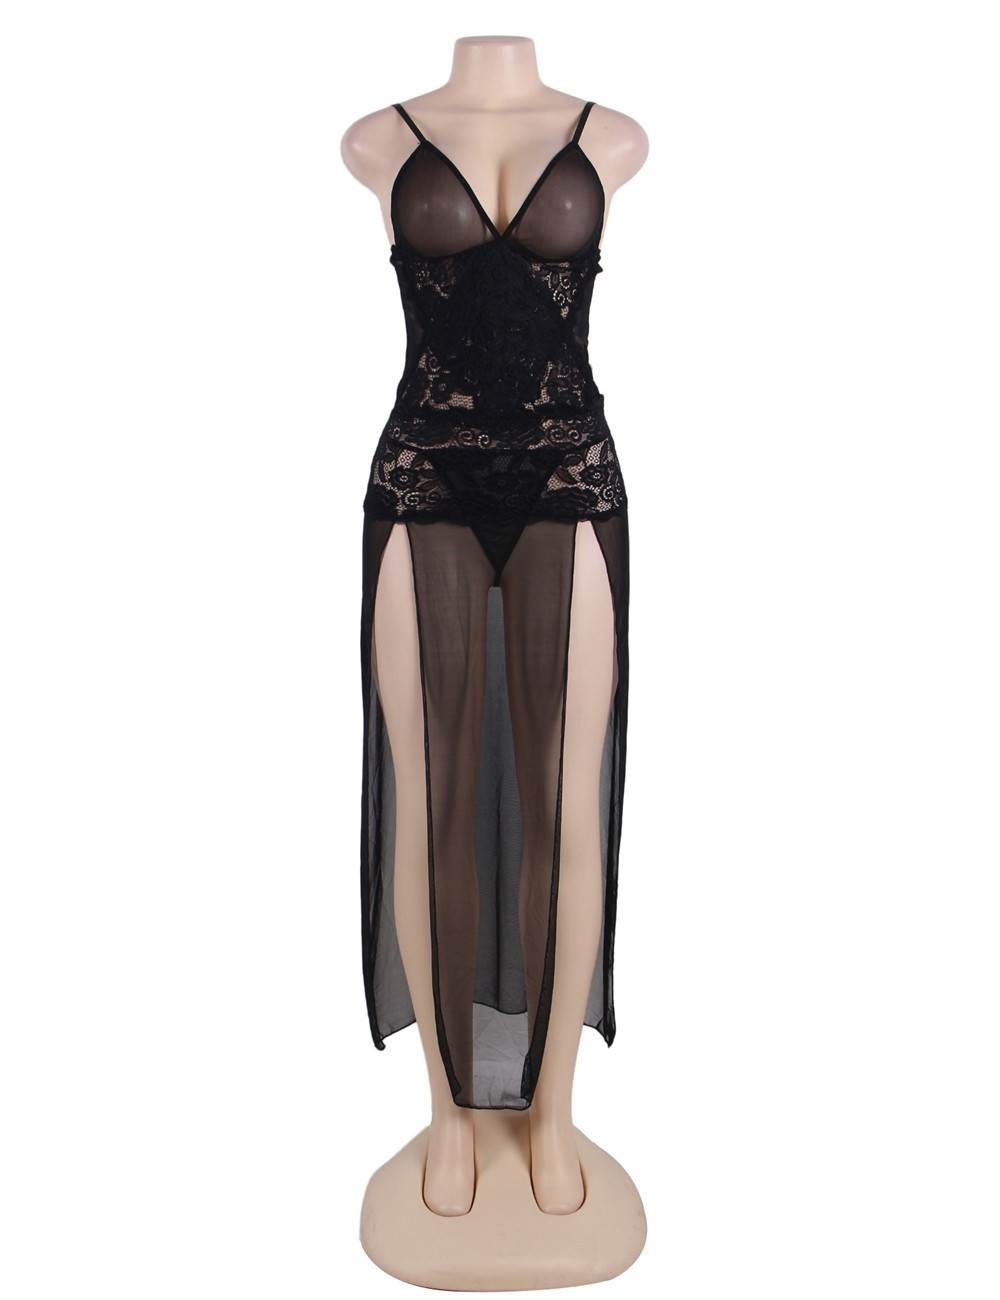 transparent nightwear for ladies